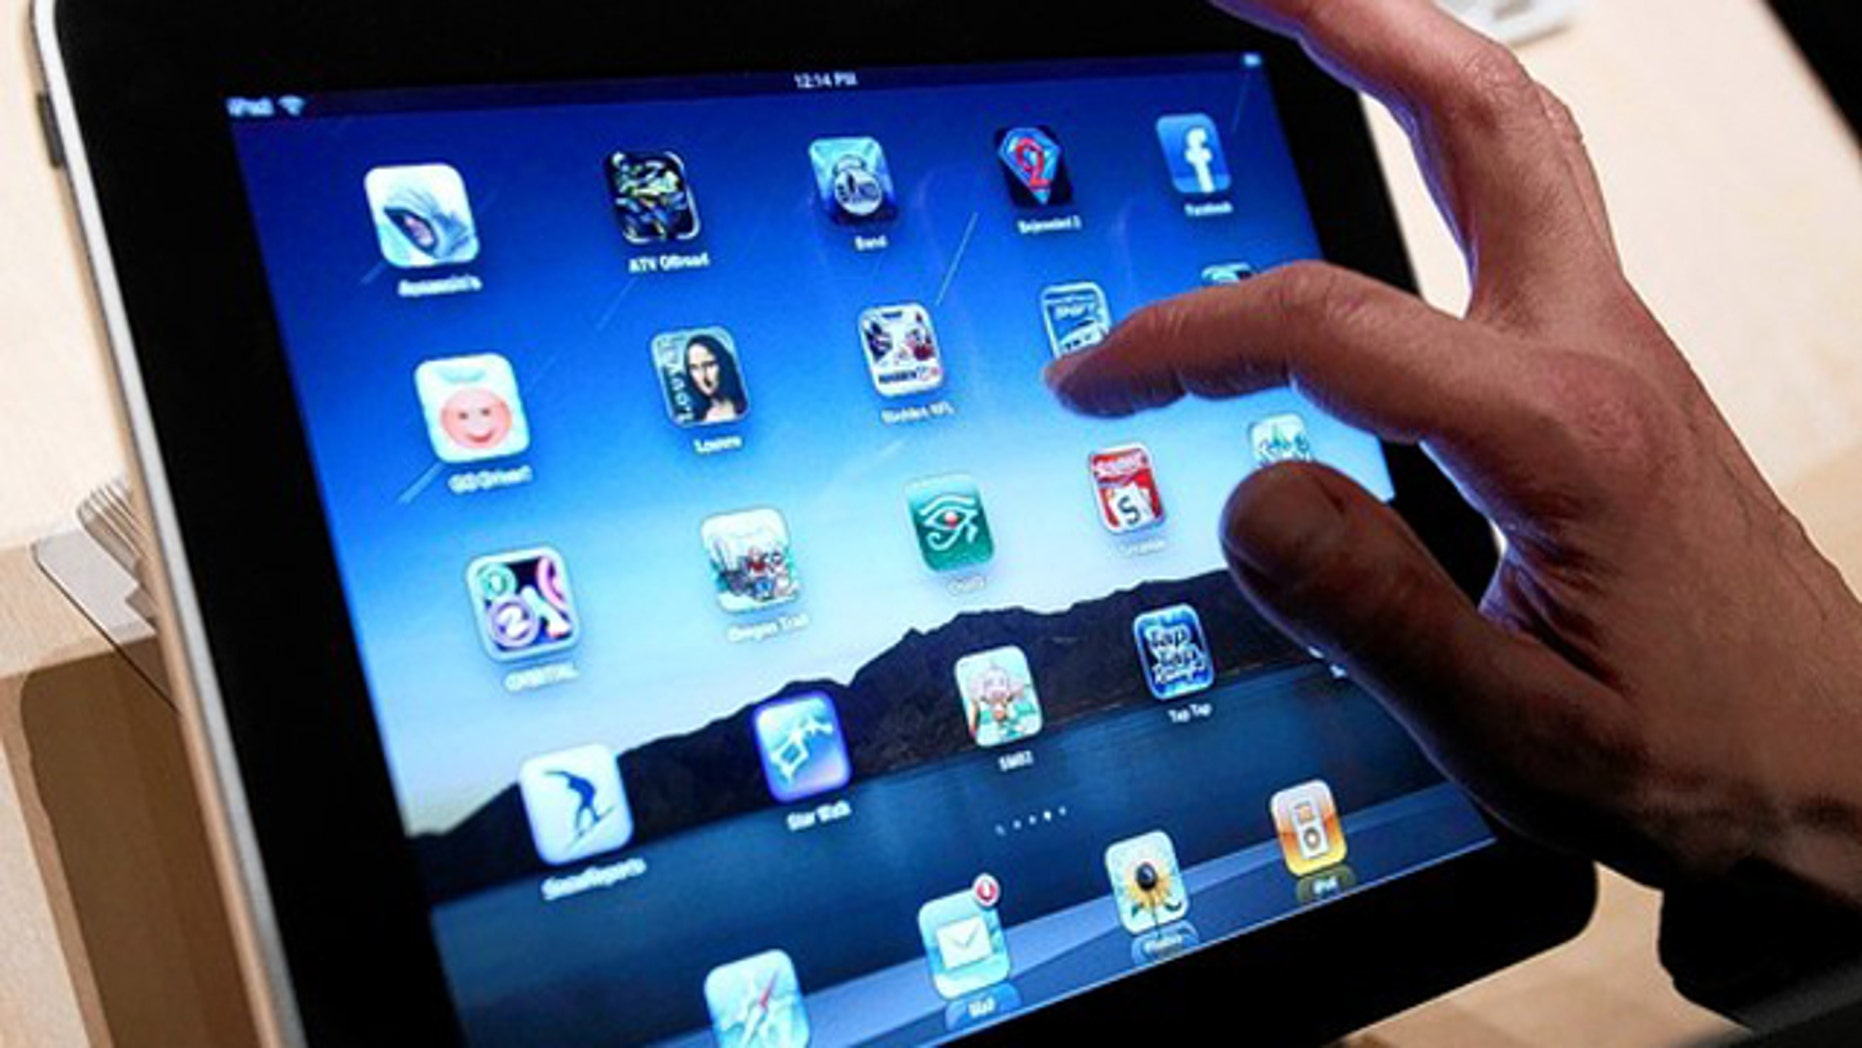 Will RIM unveil the BlackPad next week to take on Apple's iPad?